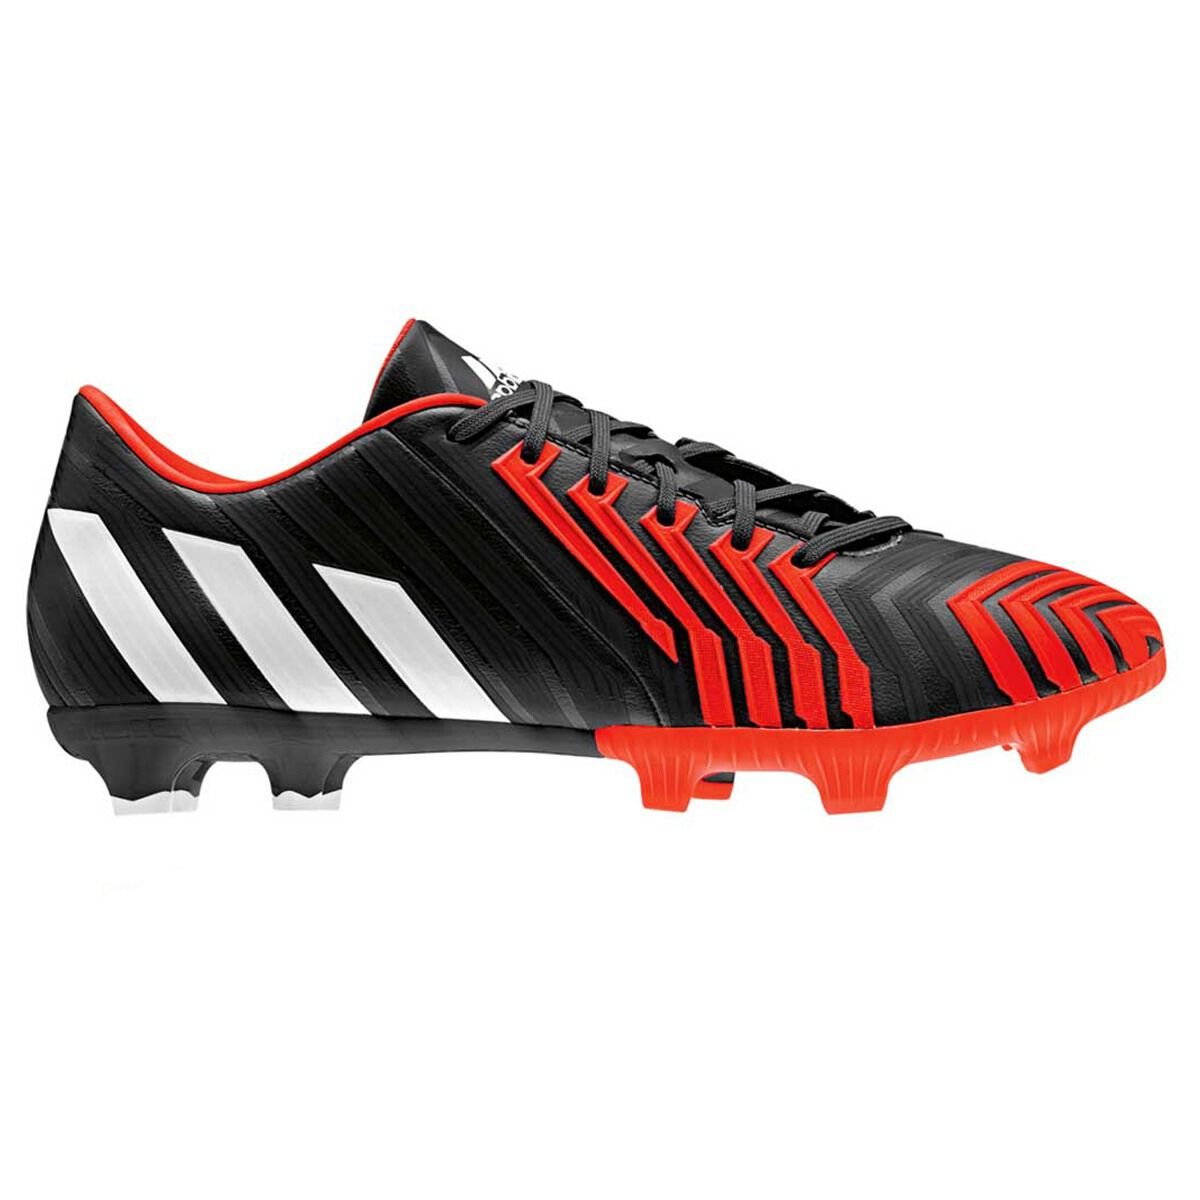 where to buy adidas footbtout boots prougeator instinct